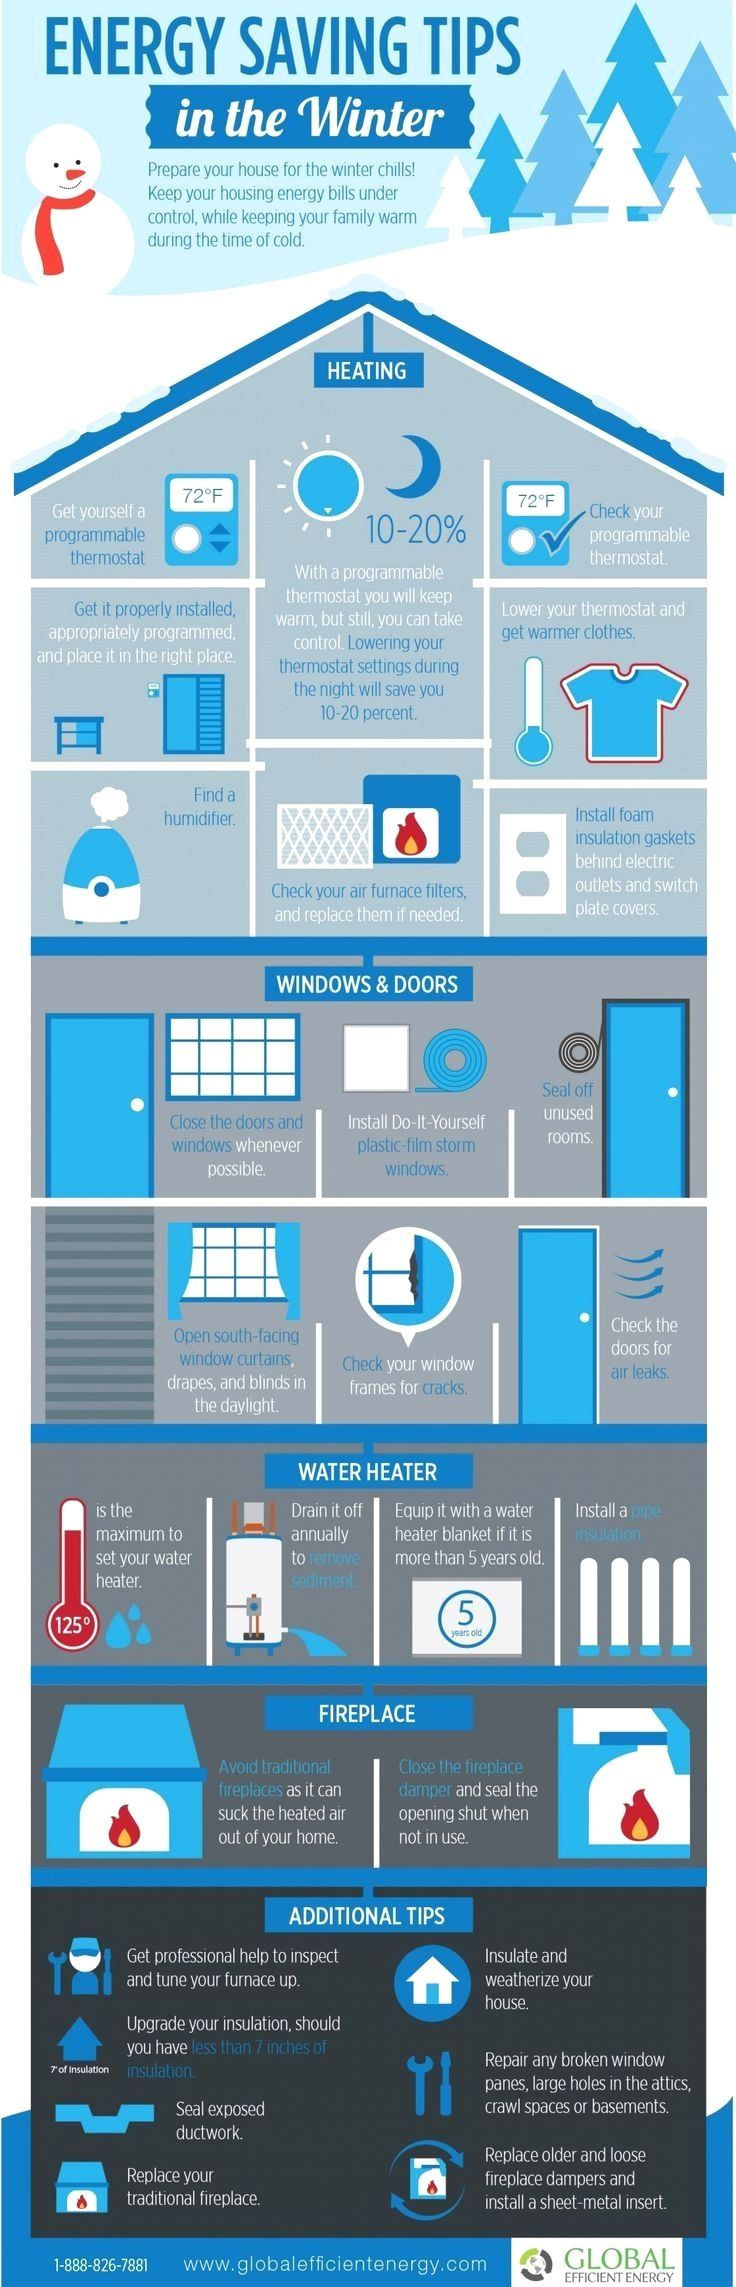 Energy Saving Tips in the Winter